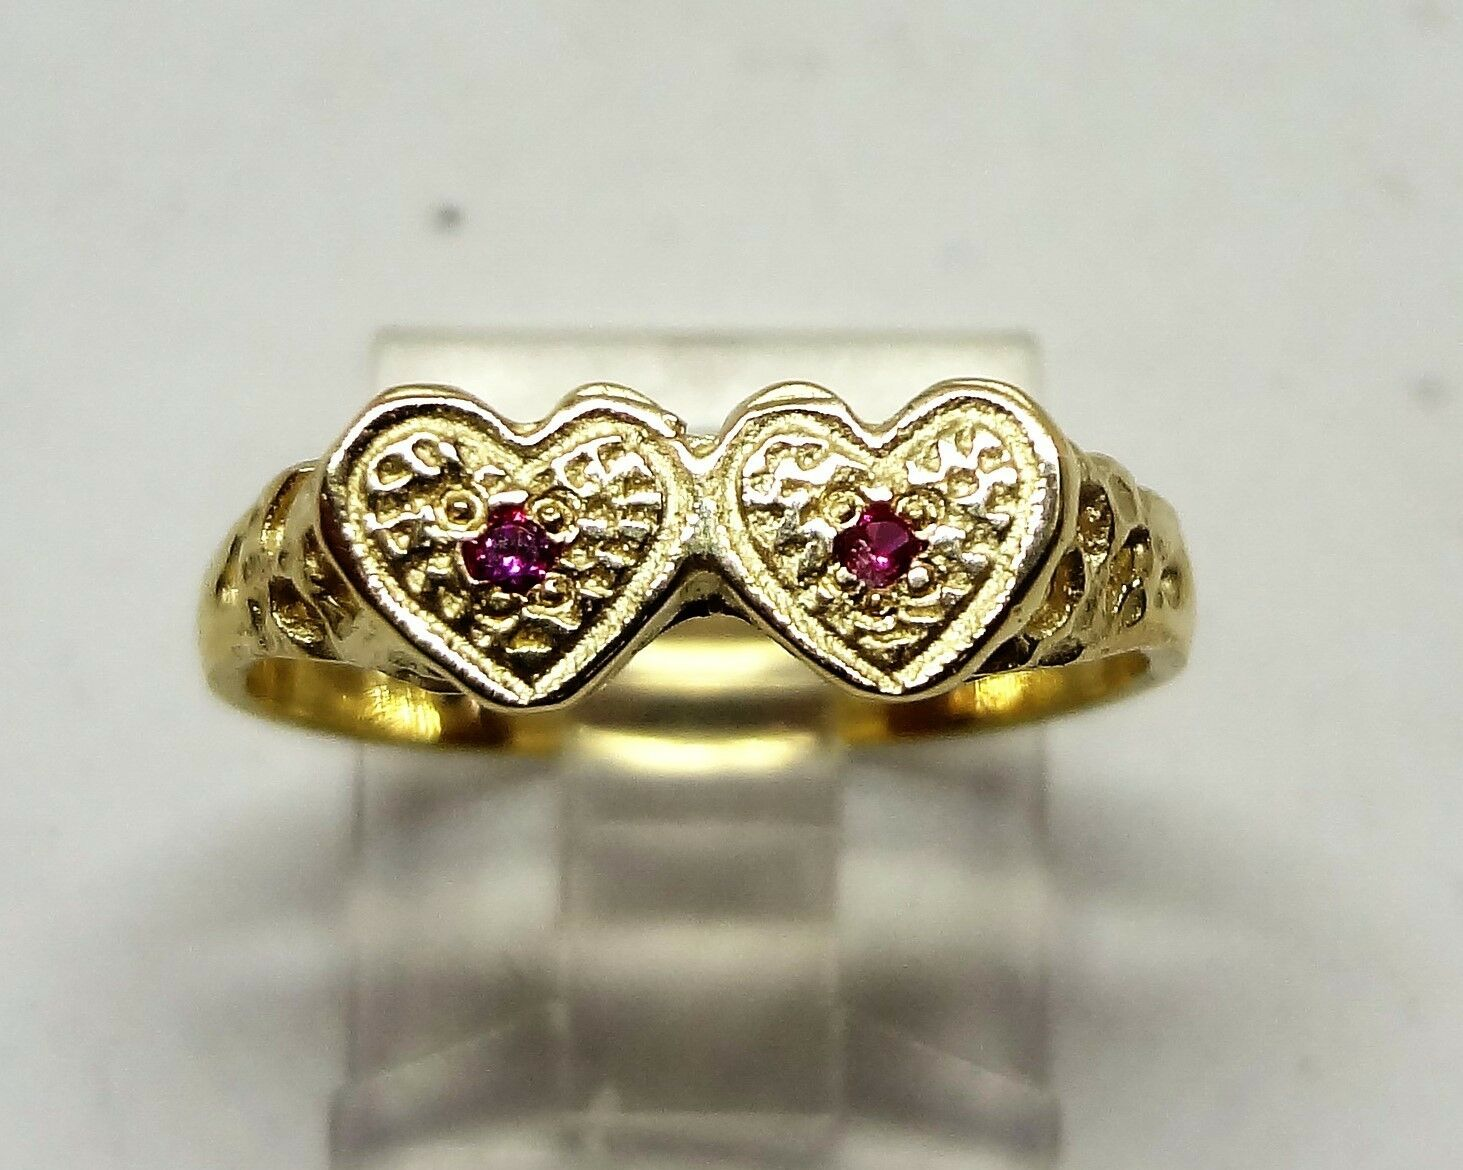 14k yellow gold two heart ring